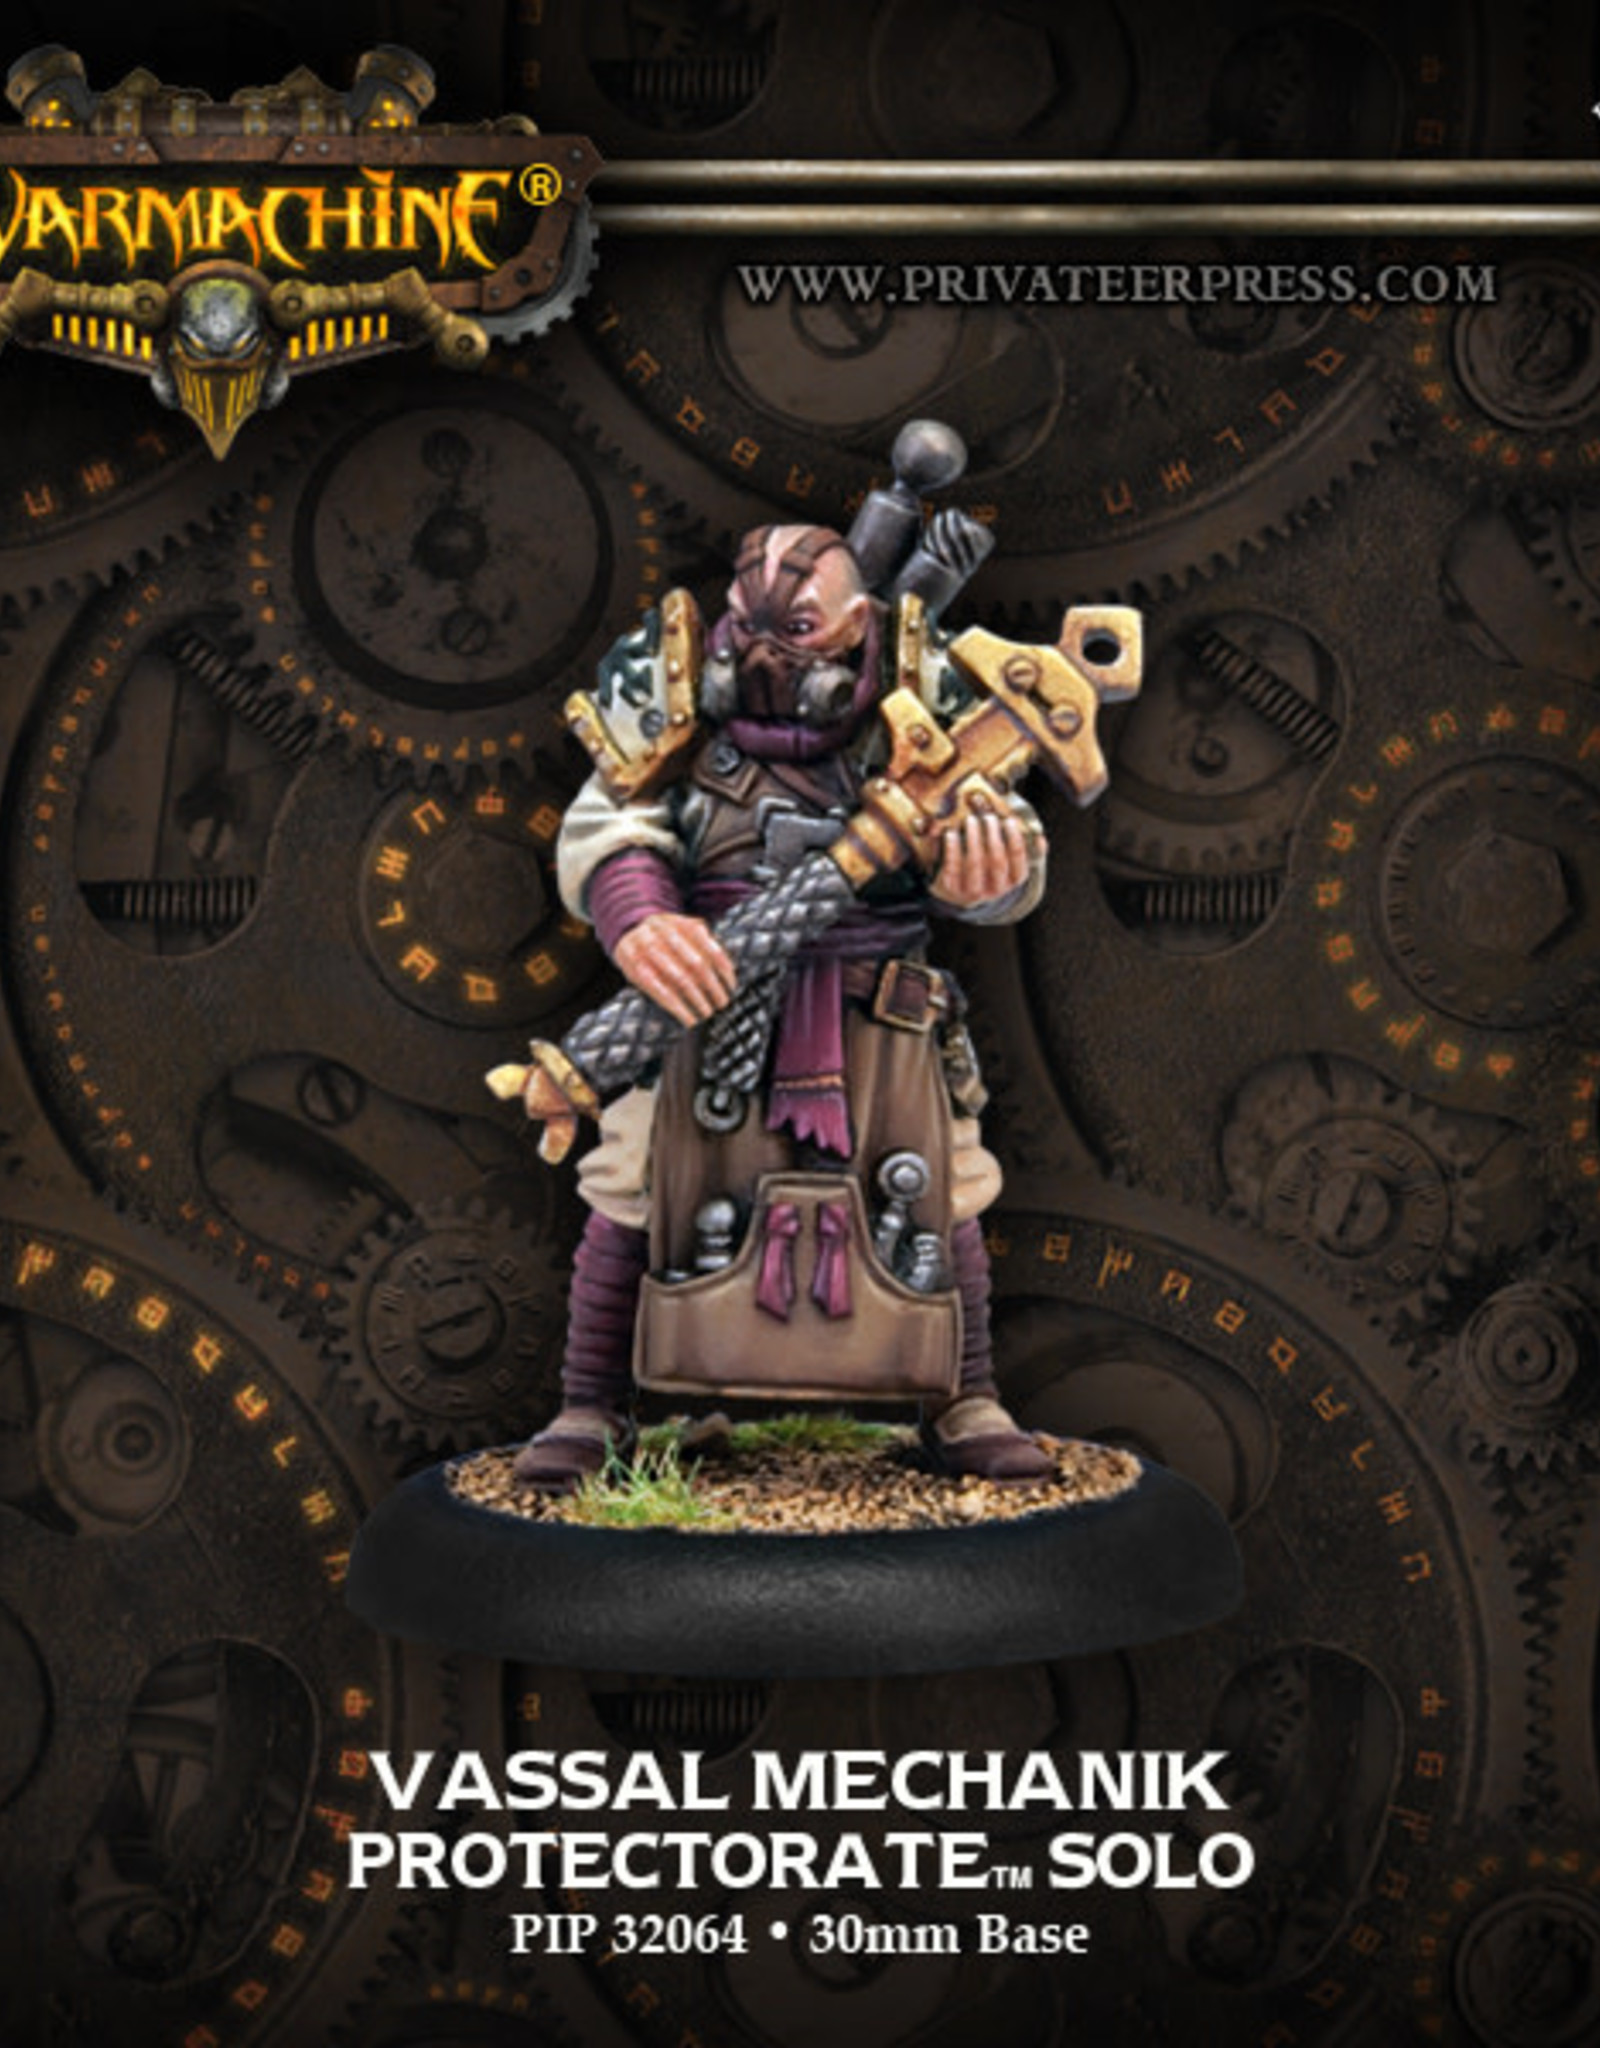 Warmachine Protectorate - Vassal Mechanik